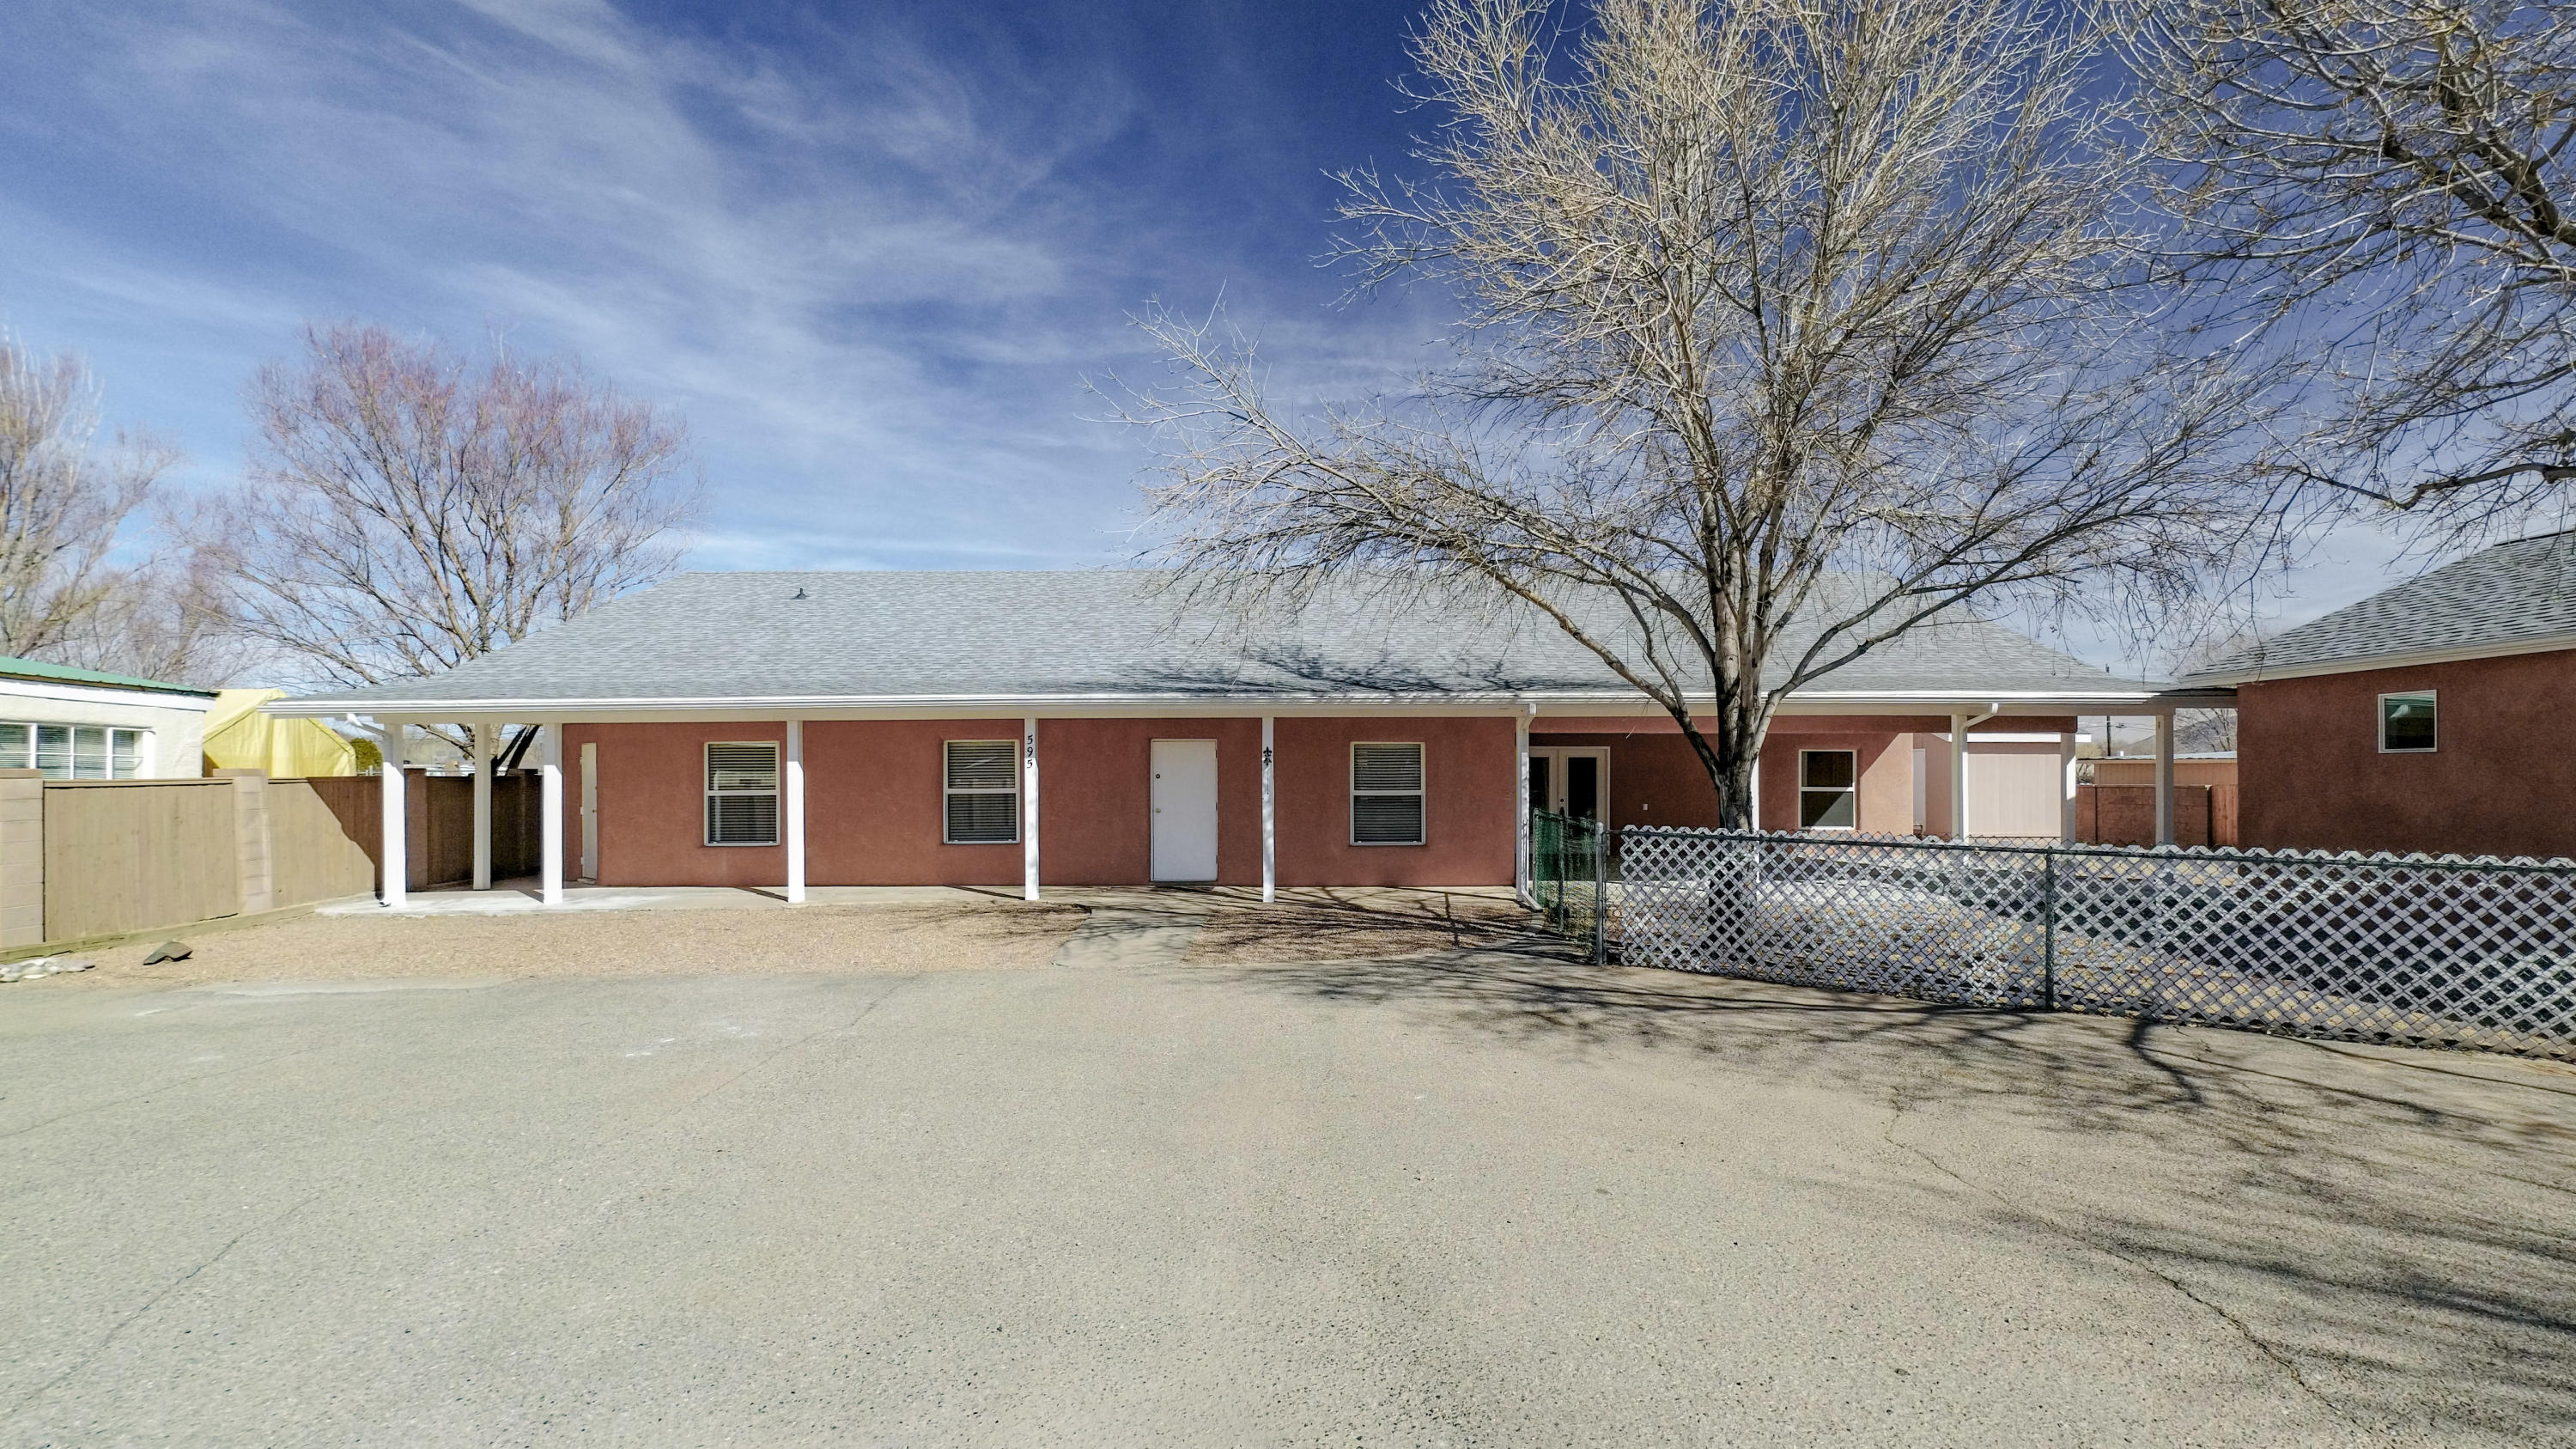 Nearly 3000 square feet on .5 acres in the highly desiriable north valley of Los Ranchos de Albuquerque.  This home is in excellent condition with an electric gate for added security.  Home features 2 living areas, ss appliances, granite counter tops in the kitchen, and one living area can be converted to a bedroom.  The roof on the house and shed is less than 2 years old. Oversized garage is insulated and is 22' wide by 33.5' deep.  The garage doors are 8 feet tall.  A portion of the garge could be converted to a studio or casita.  Property is zoned R2 which allows a casita (conditioned by the Village of Los Ranchos)